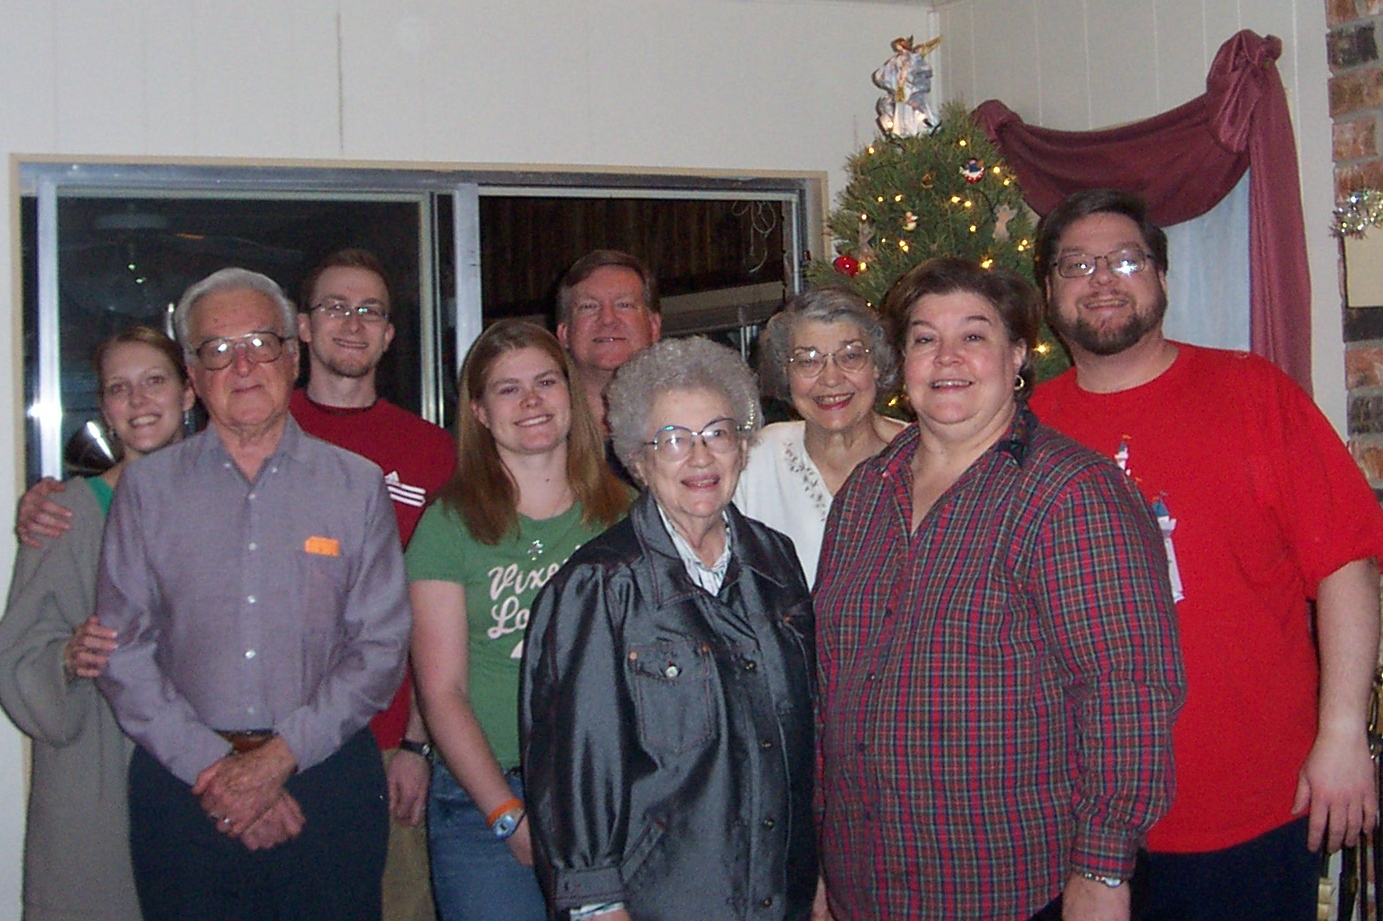 Our Christmas portrait.  Left to right:  Kalyn, Dad, Josh, Jenna, Mark, Aunt Pet, Mom, Wendy, and Jon.